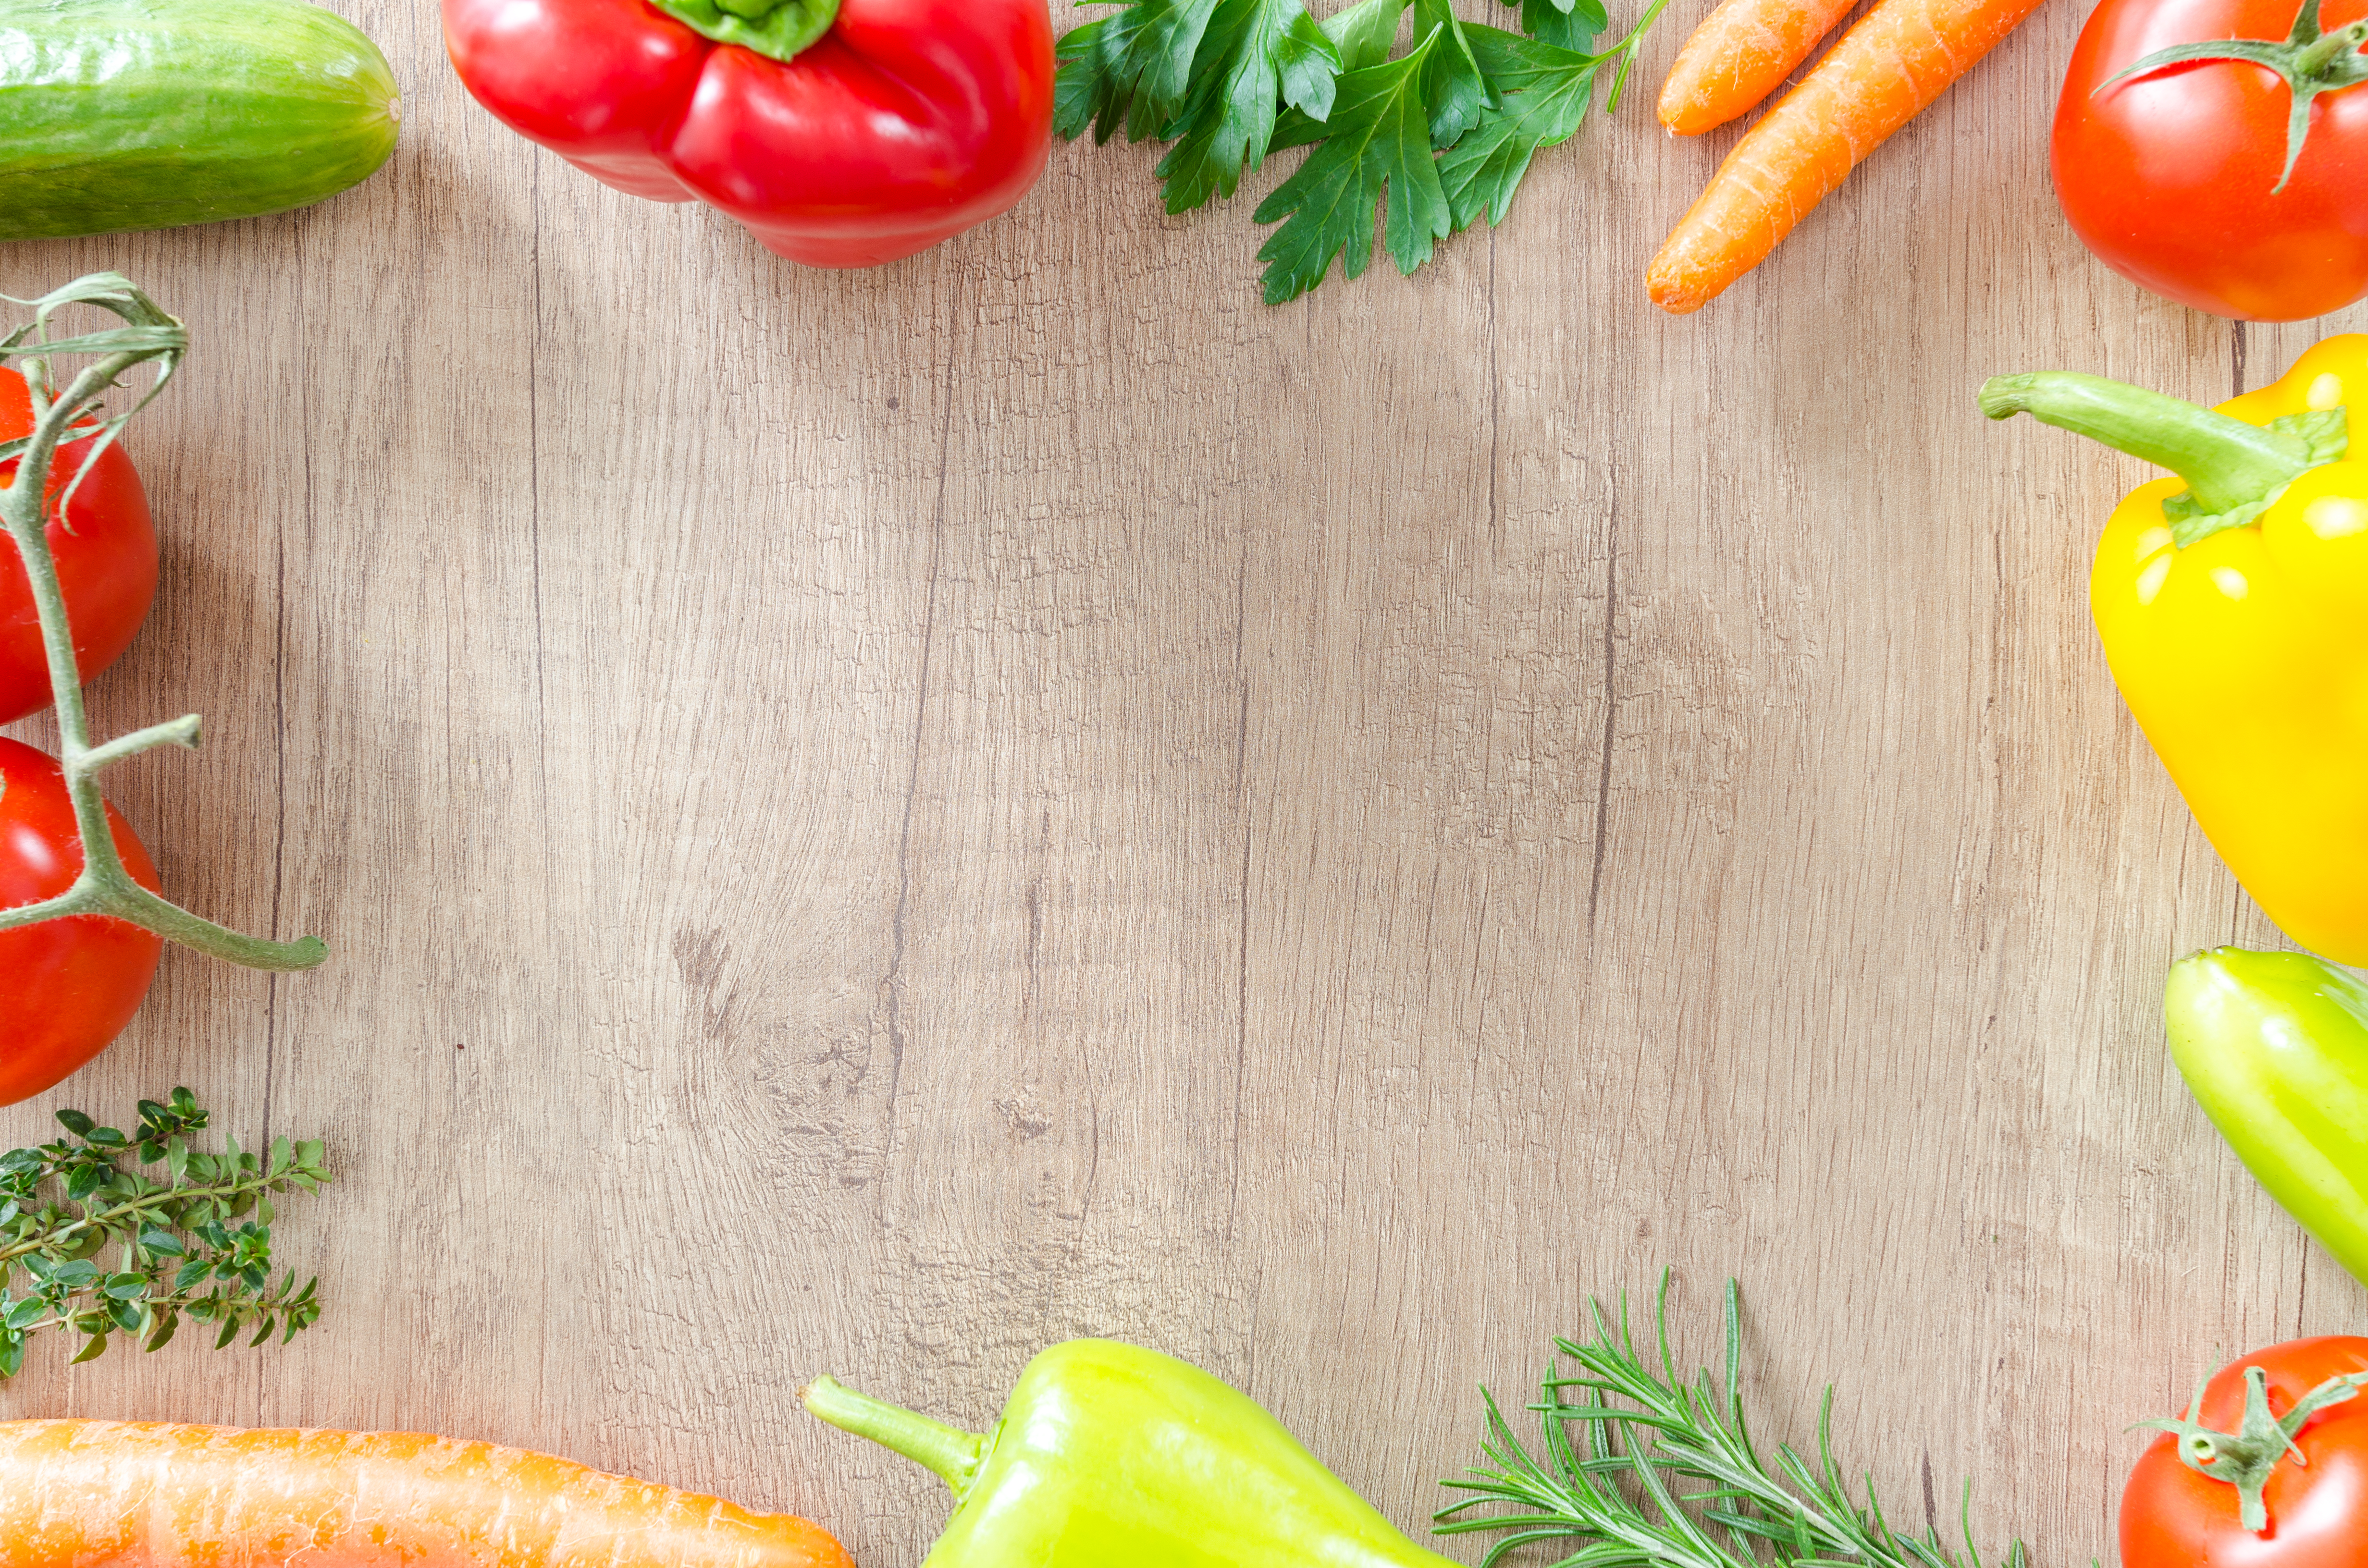 Assorted Vegetables On Brown Surface Free Stock Photo